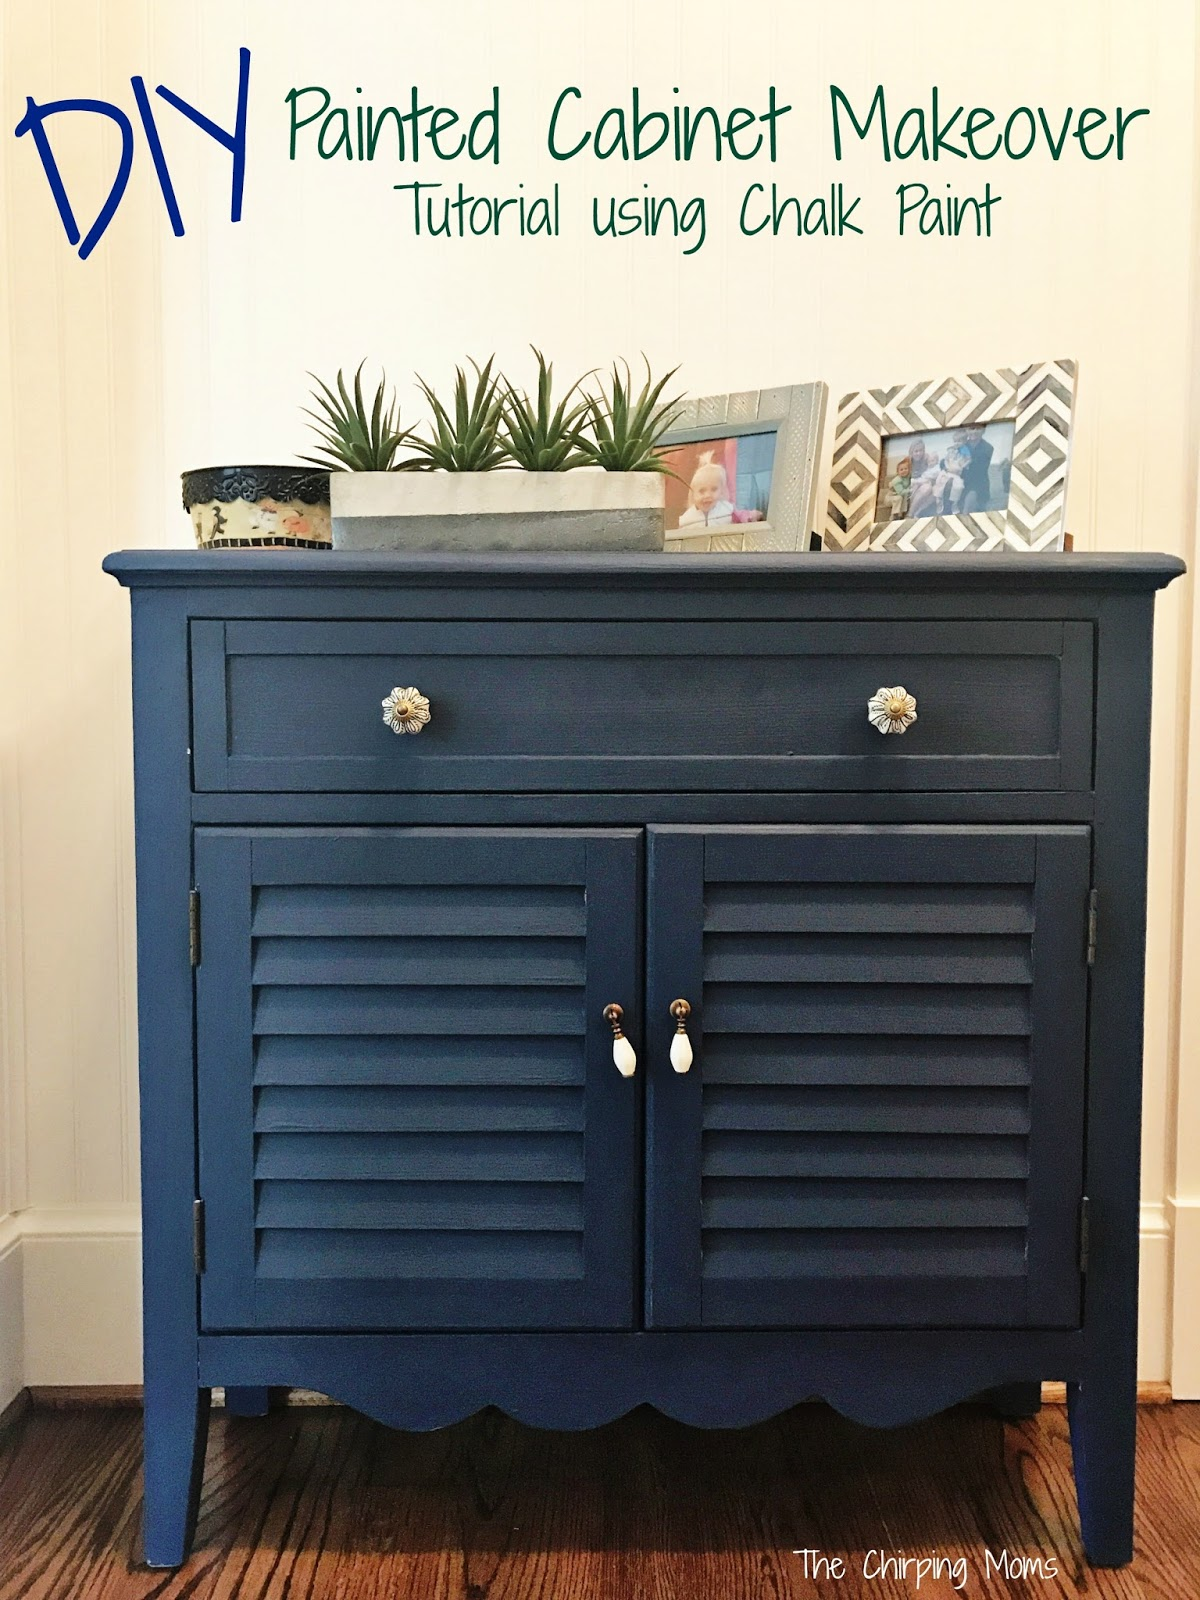 chalk paint furniture diyDIY Painted Furniture Makeover using Chalk Paint  The Chirping Moms